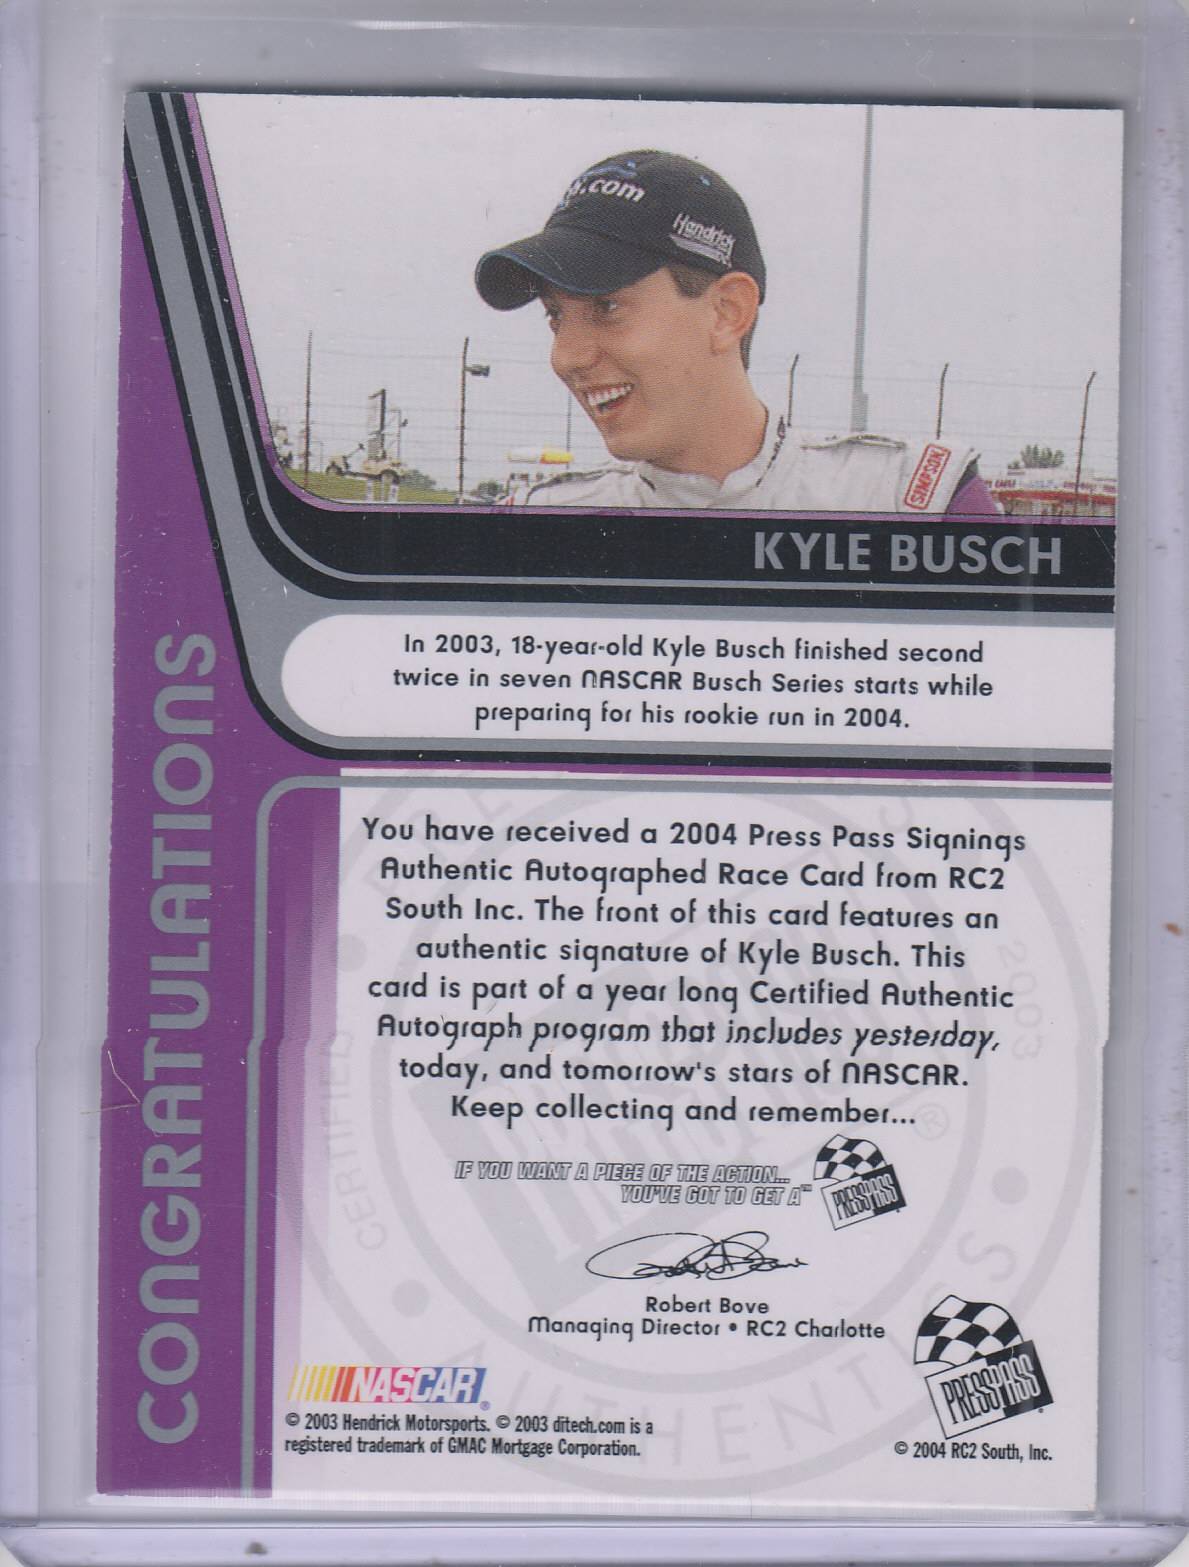 2004 Press Pass Signings #10 Kyle Busch O/P/S/T/V back image